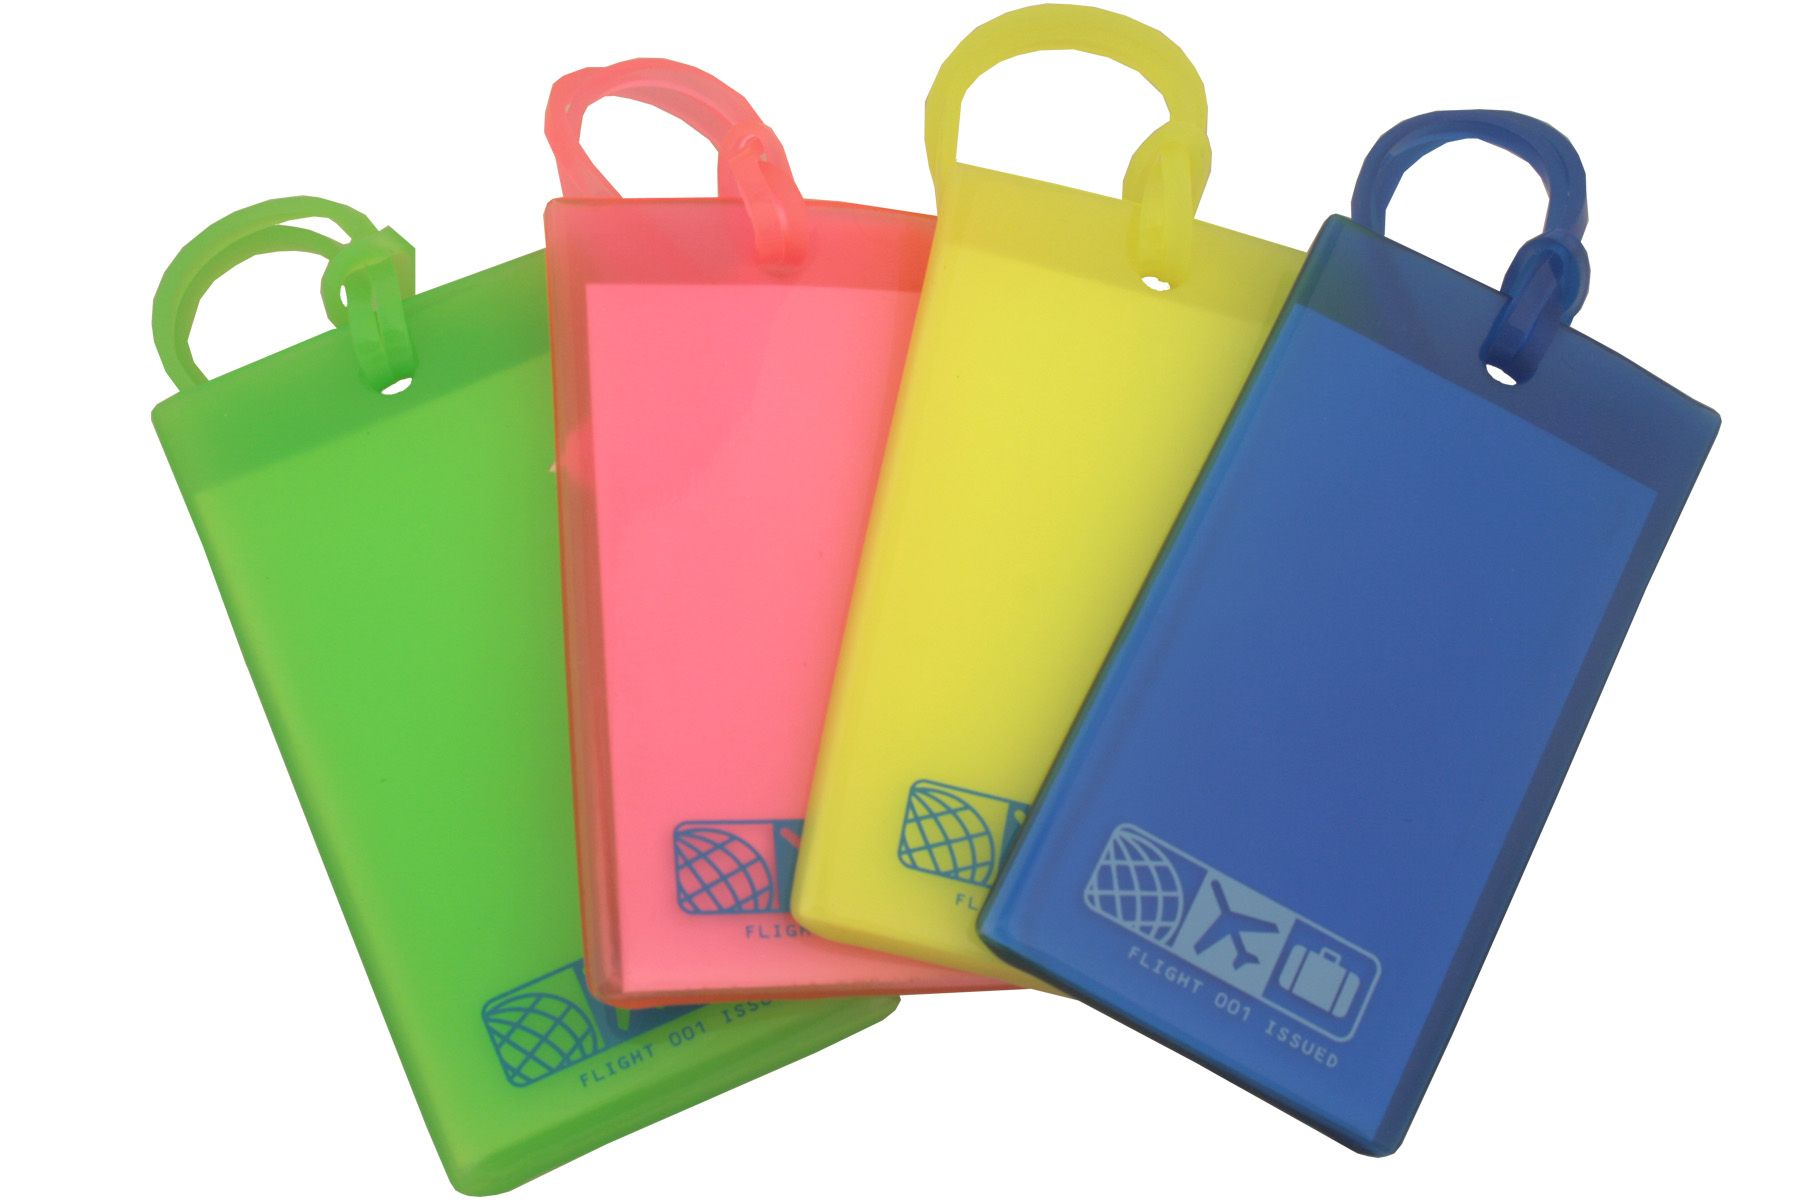 A set of our 4 assortedcolor rubber luggage tags. Each